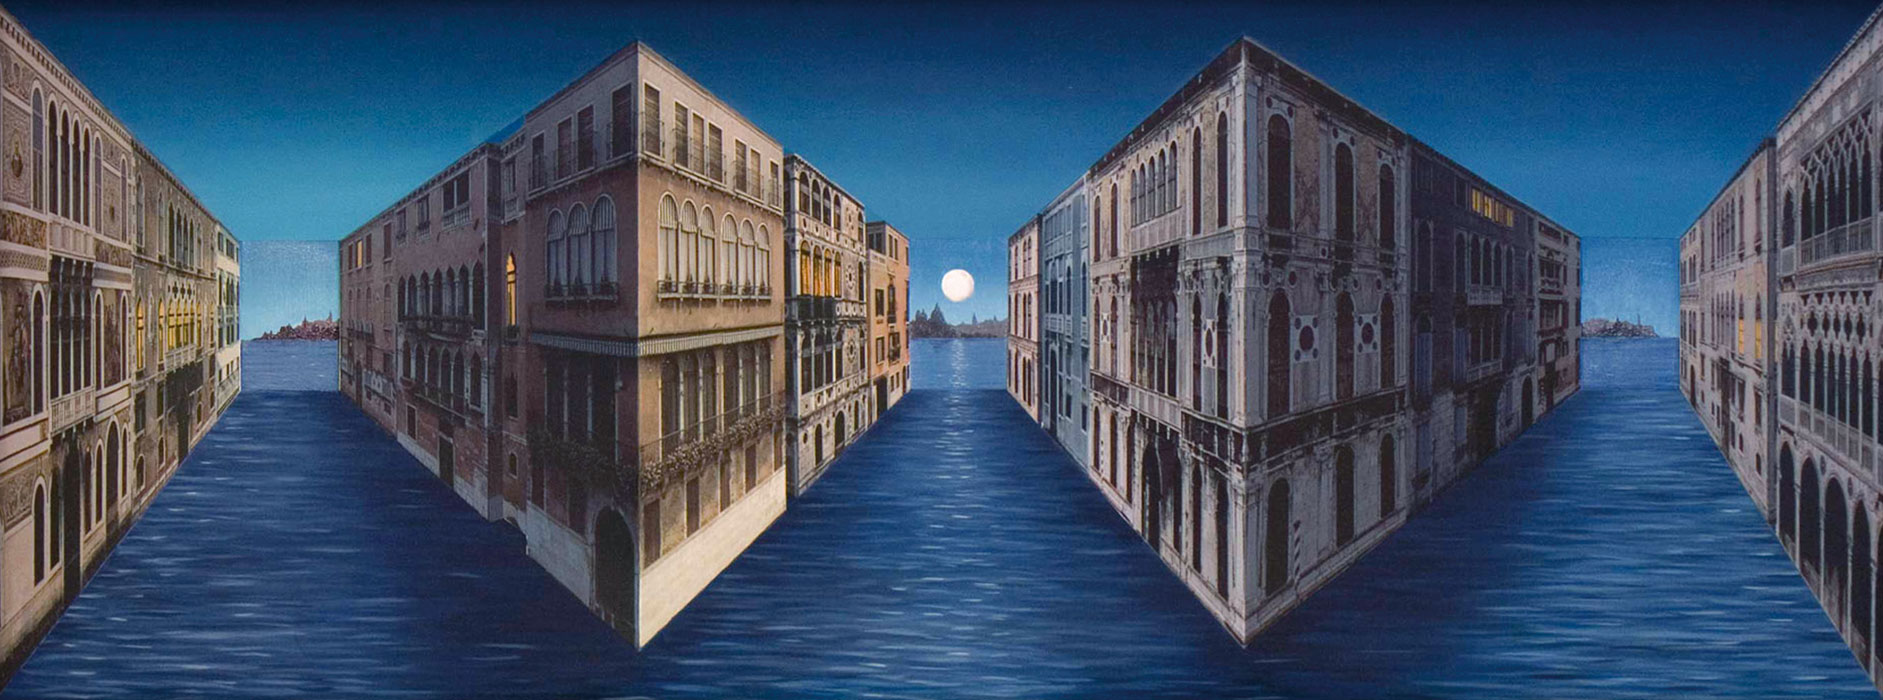 Blue Moon <p>2009 | Edition 5 | 76 X 173 X 25 cm / 30¾ x 68⅛ x 9⅞ in</p>